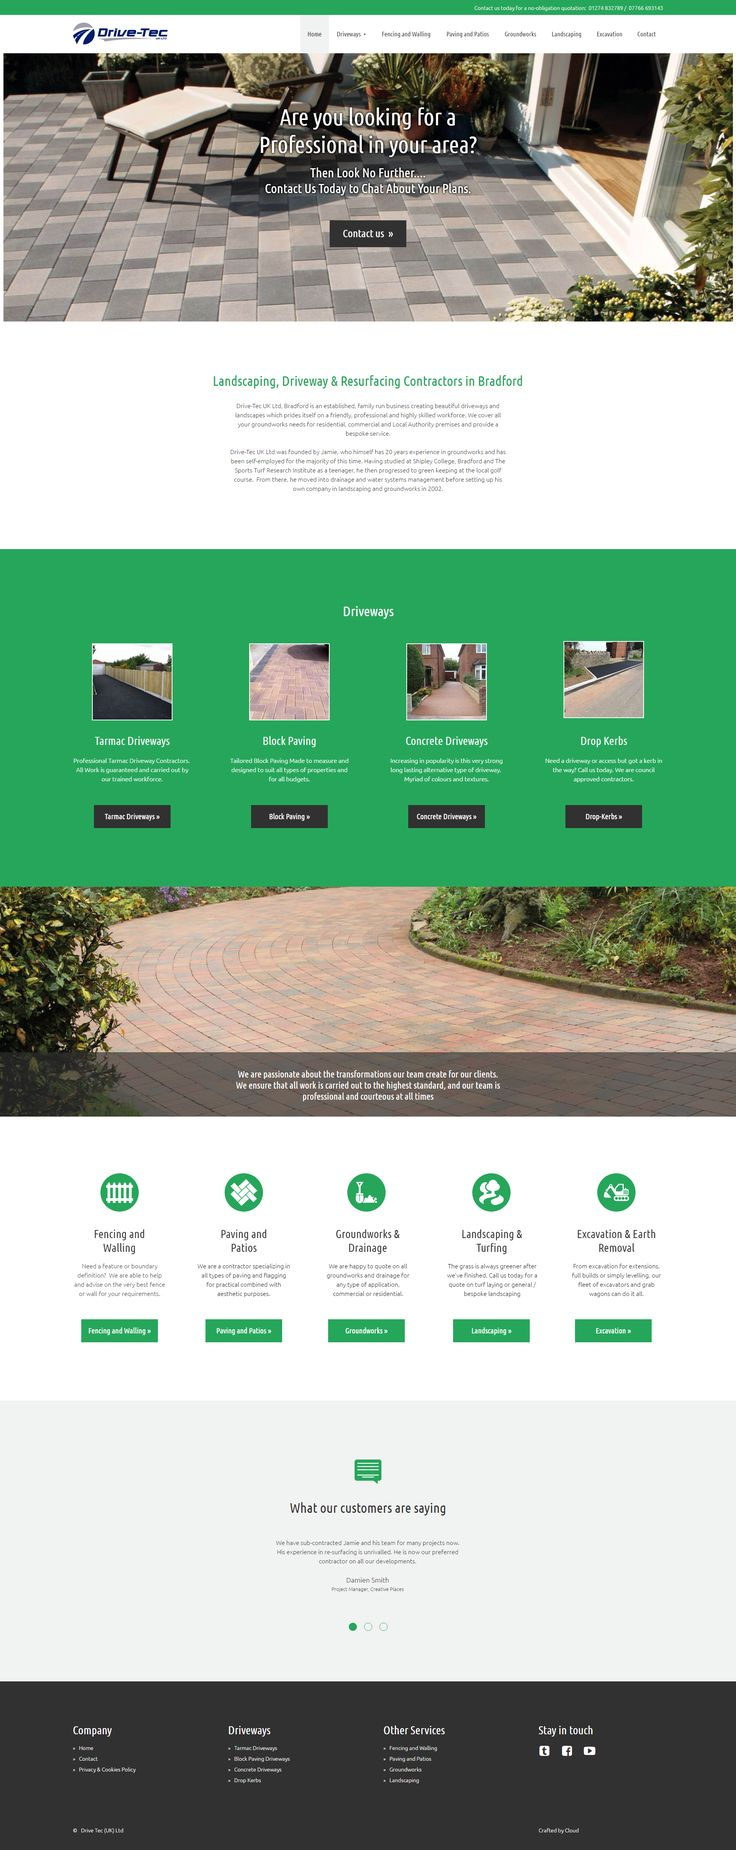 Brand new website for Drive-Tec UK.  For all your Driveways and Landscaping needs throughout the UK.